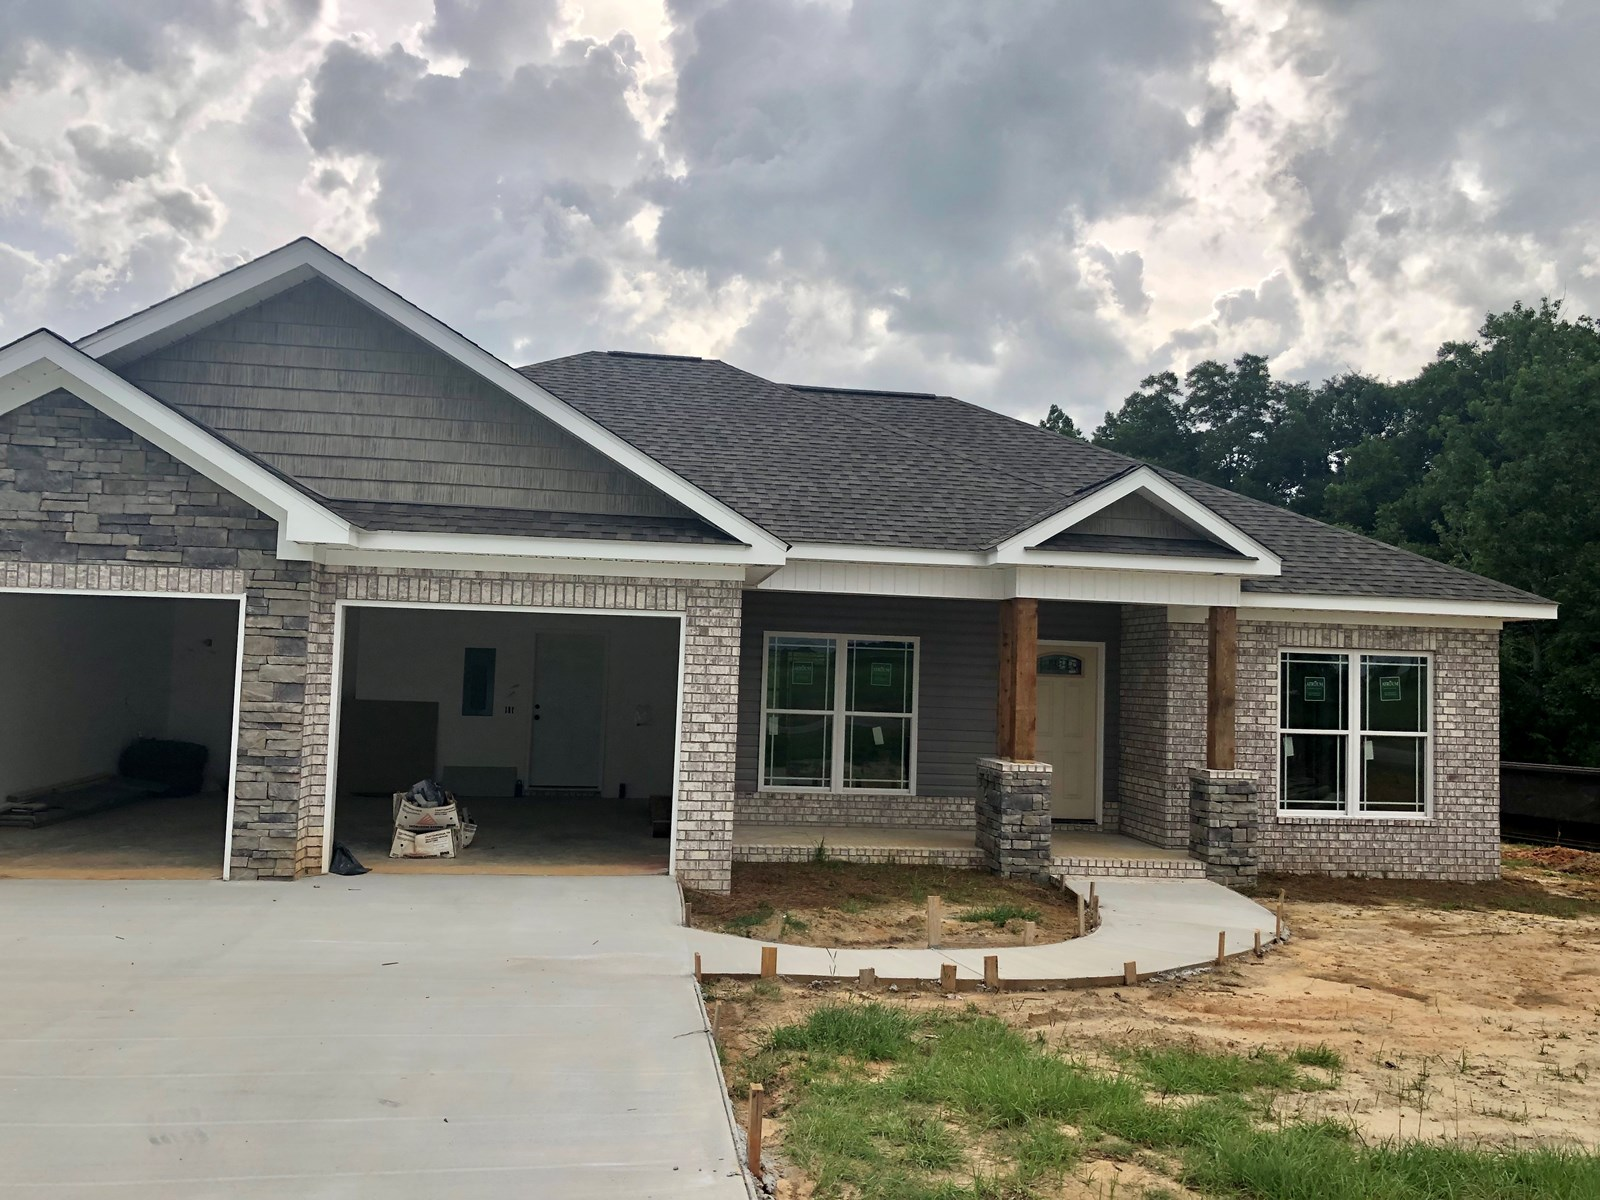 3B/2B NEW CONSTRUCTION N ST HWY 103, SLOCOMB, ALABAMA